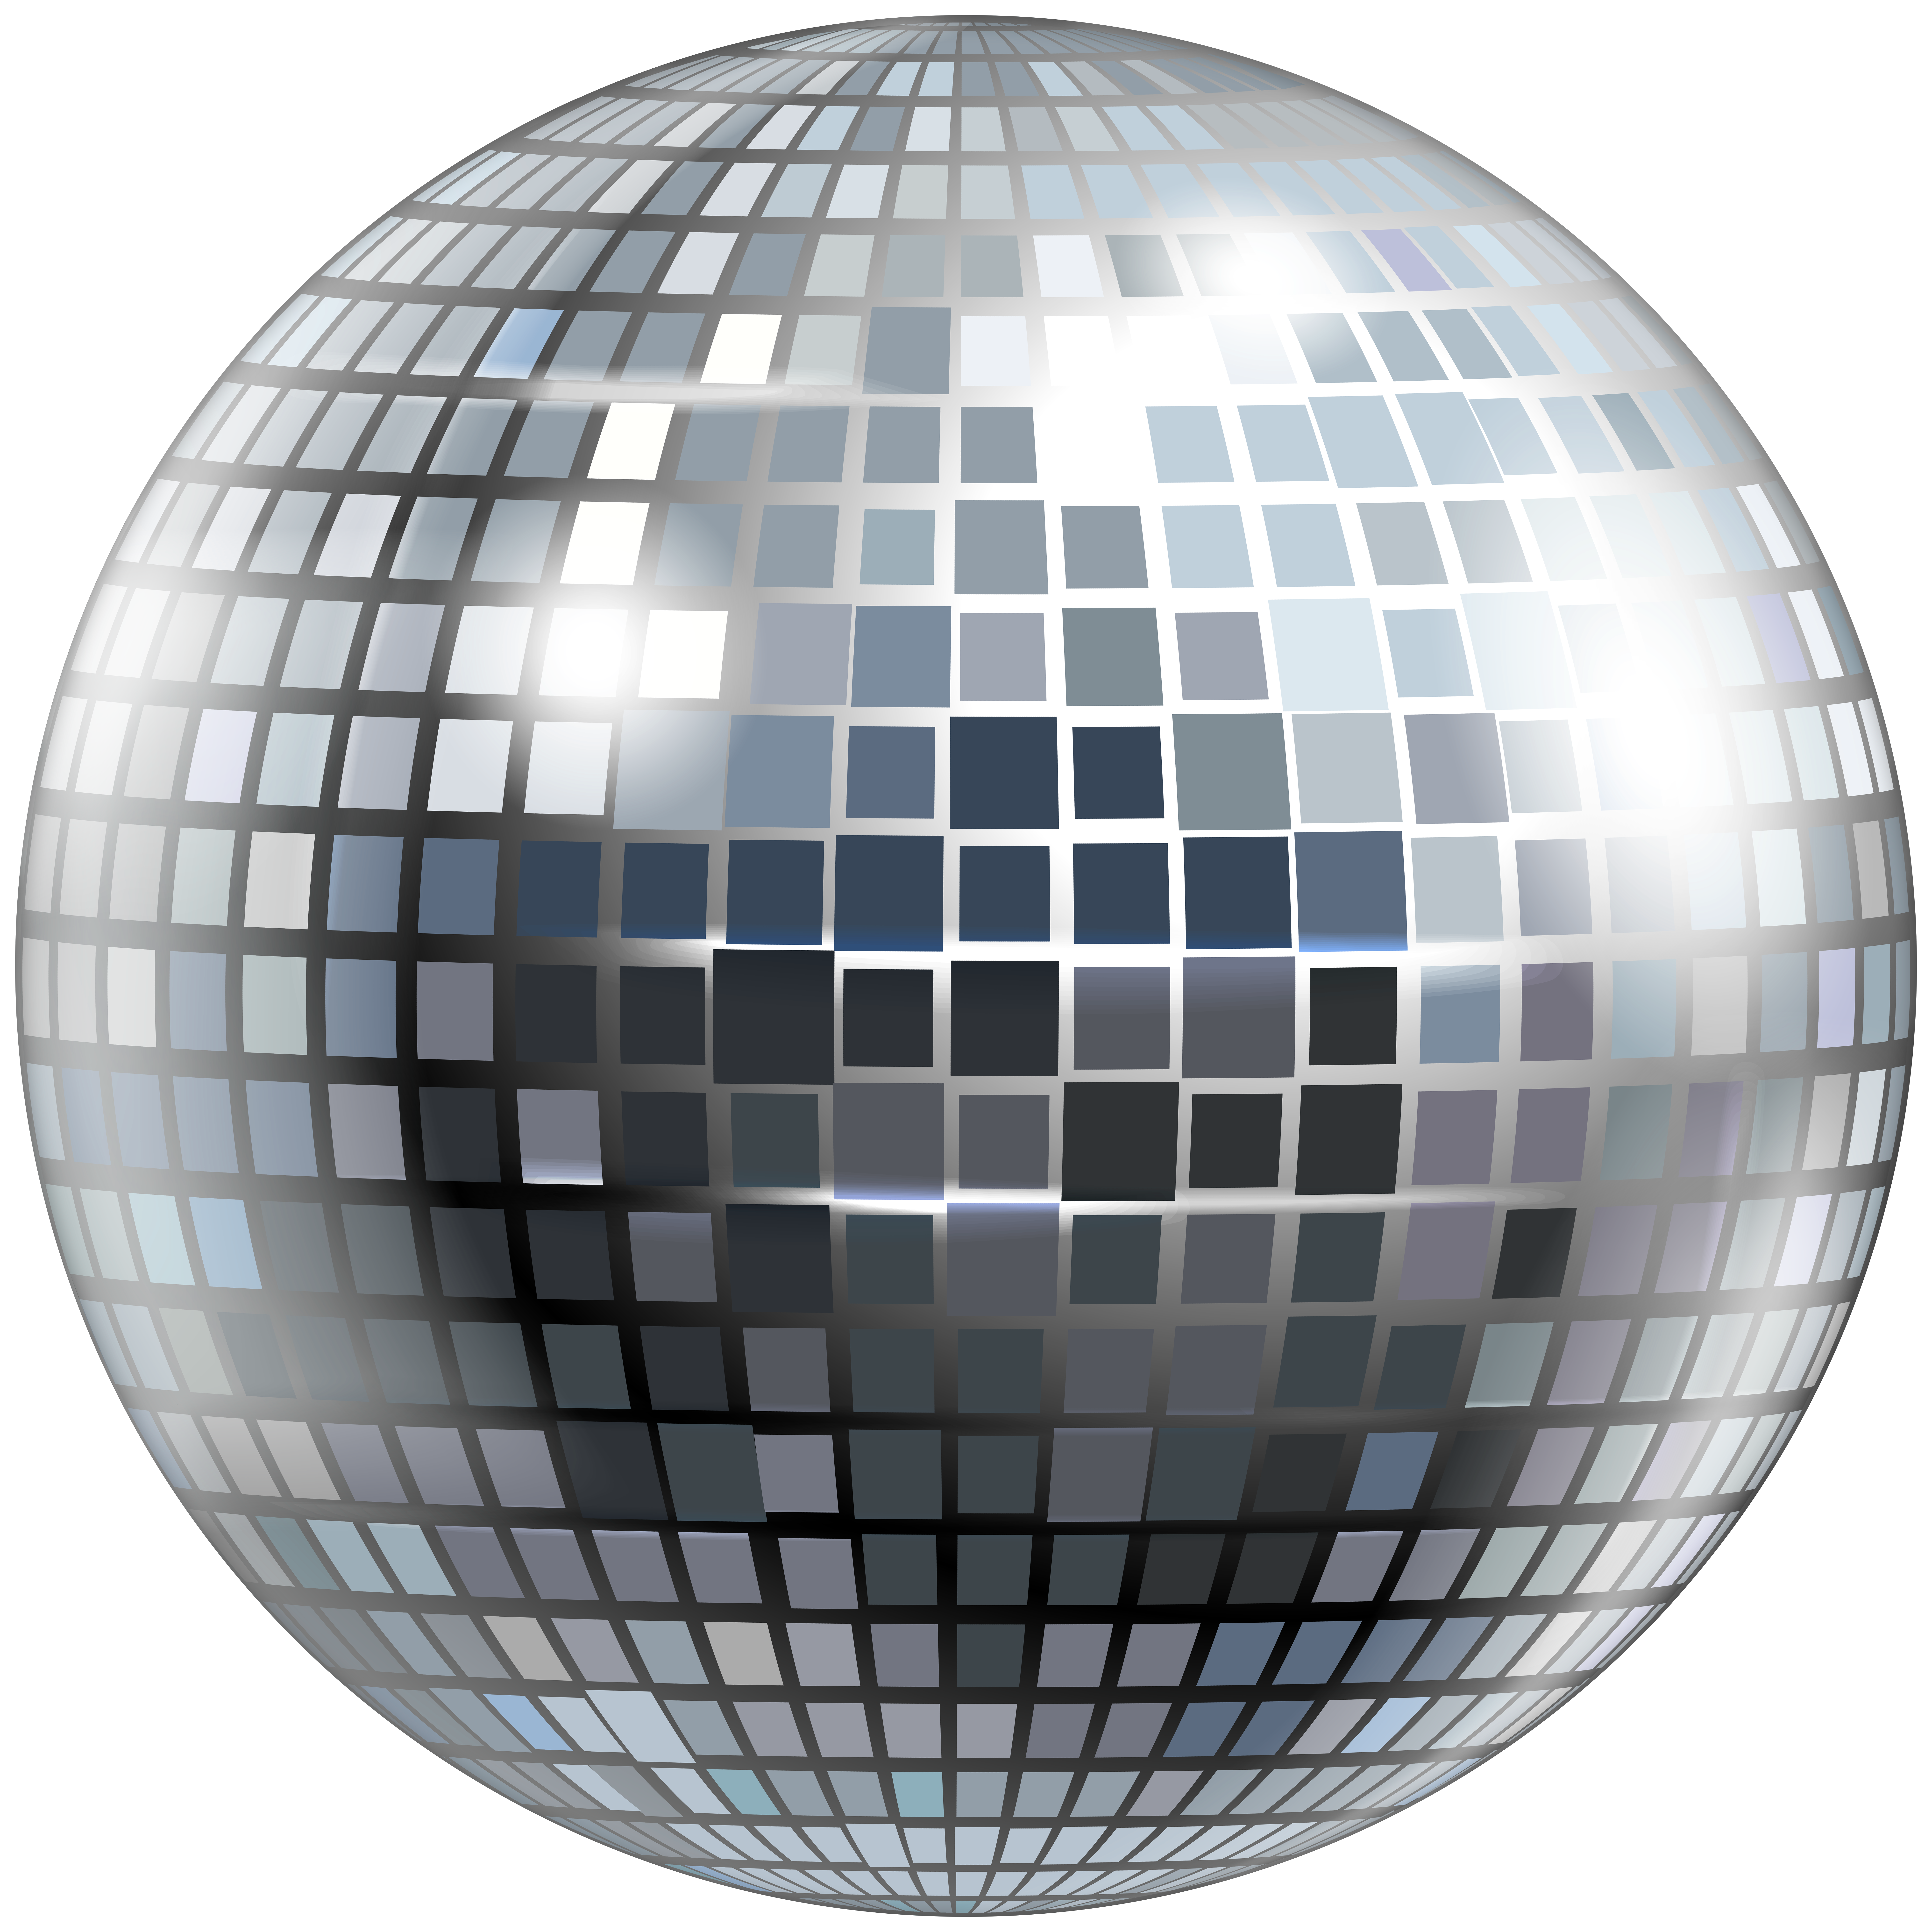 Disco Ball Silver Transparent Image Gallery Png